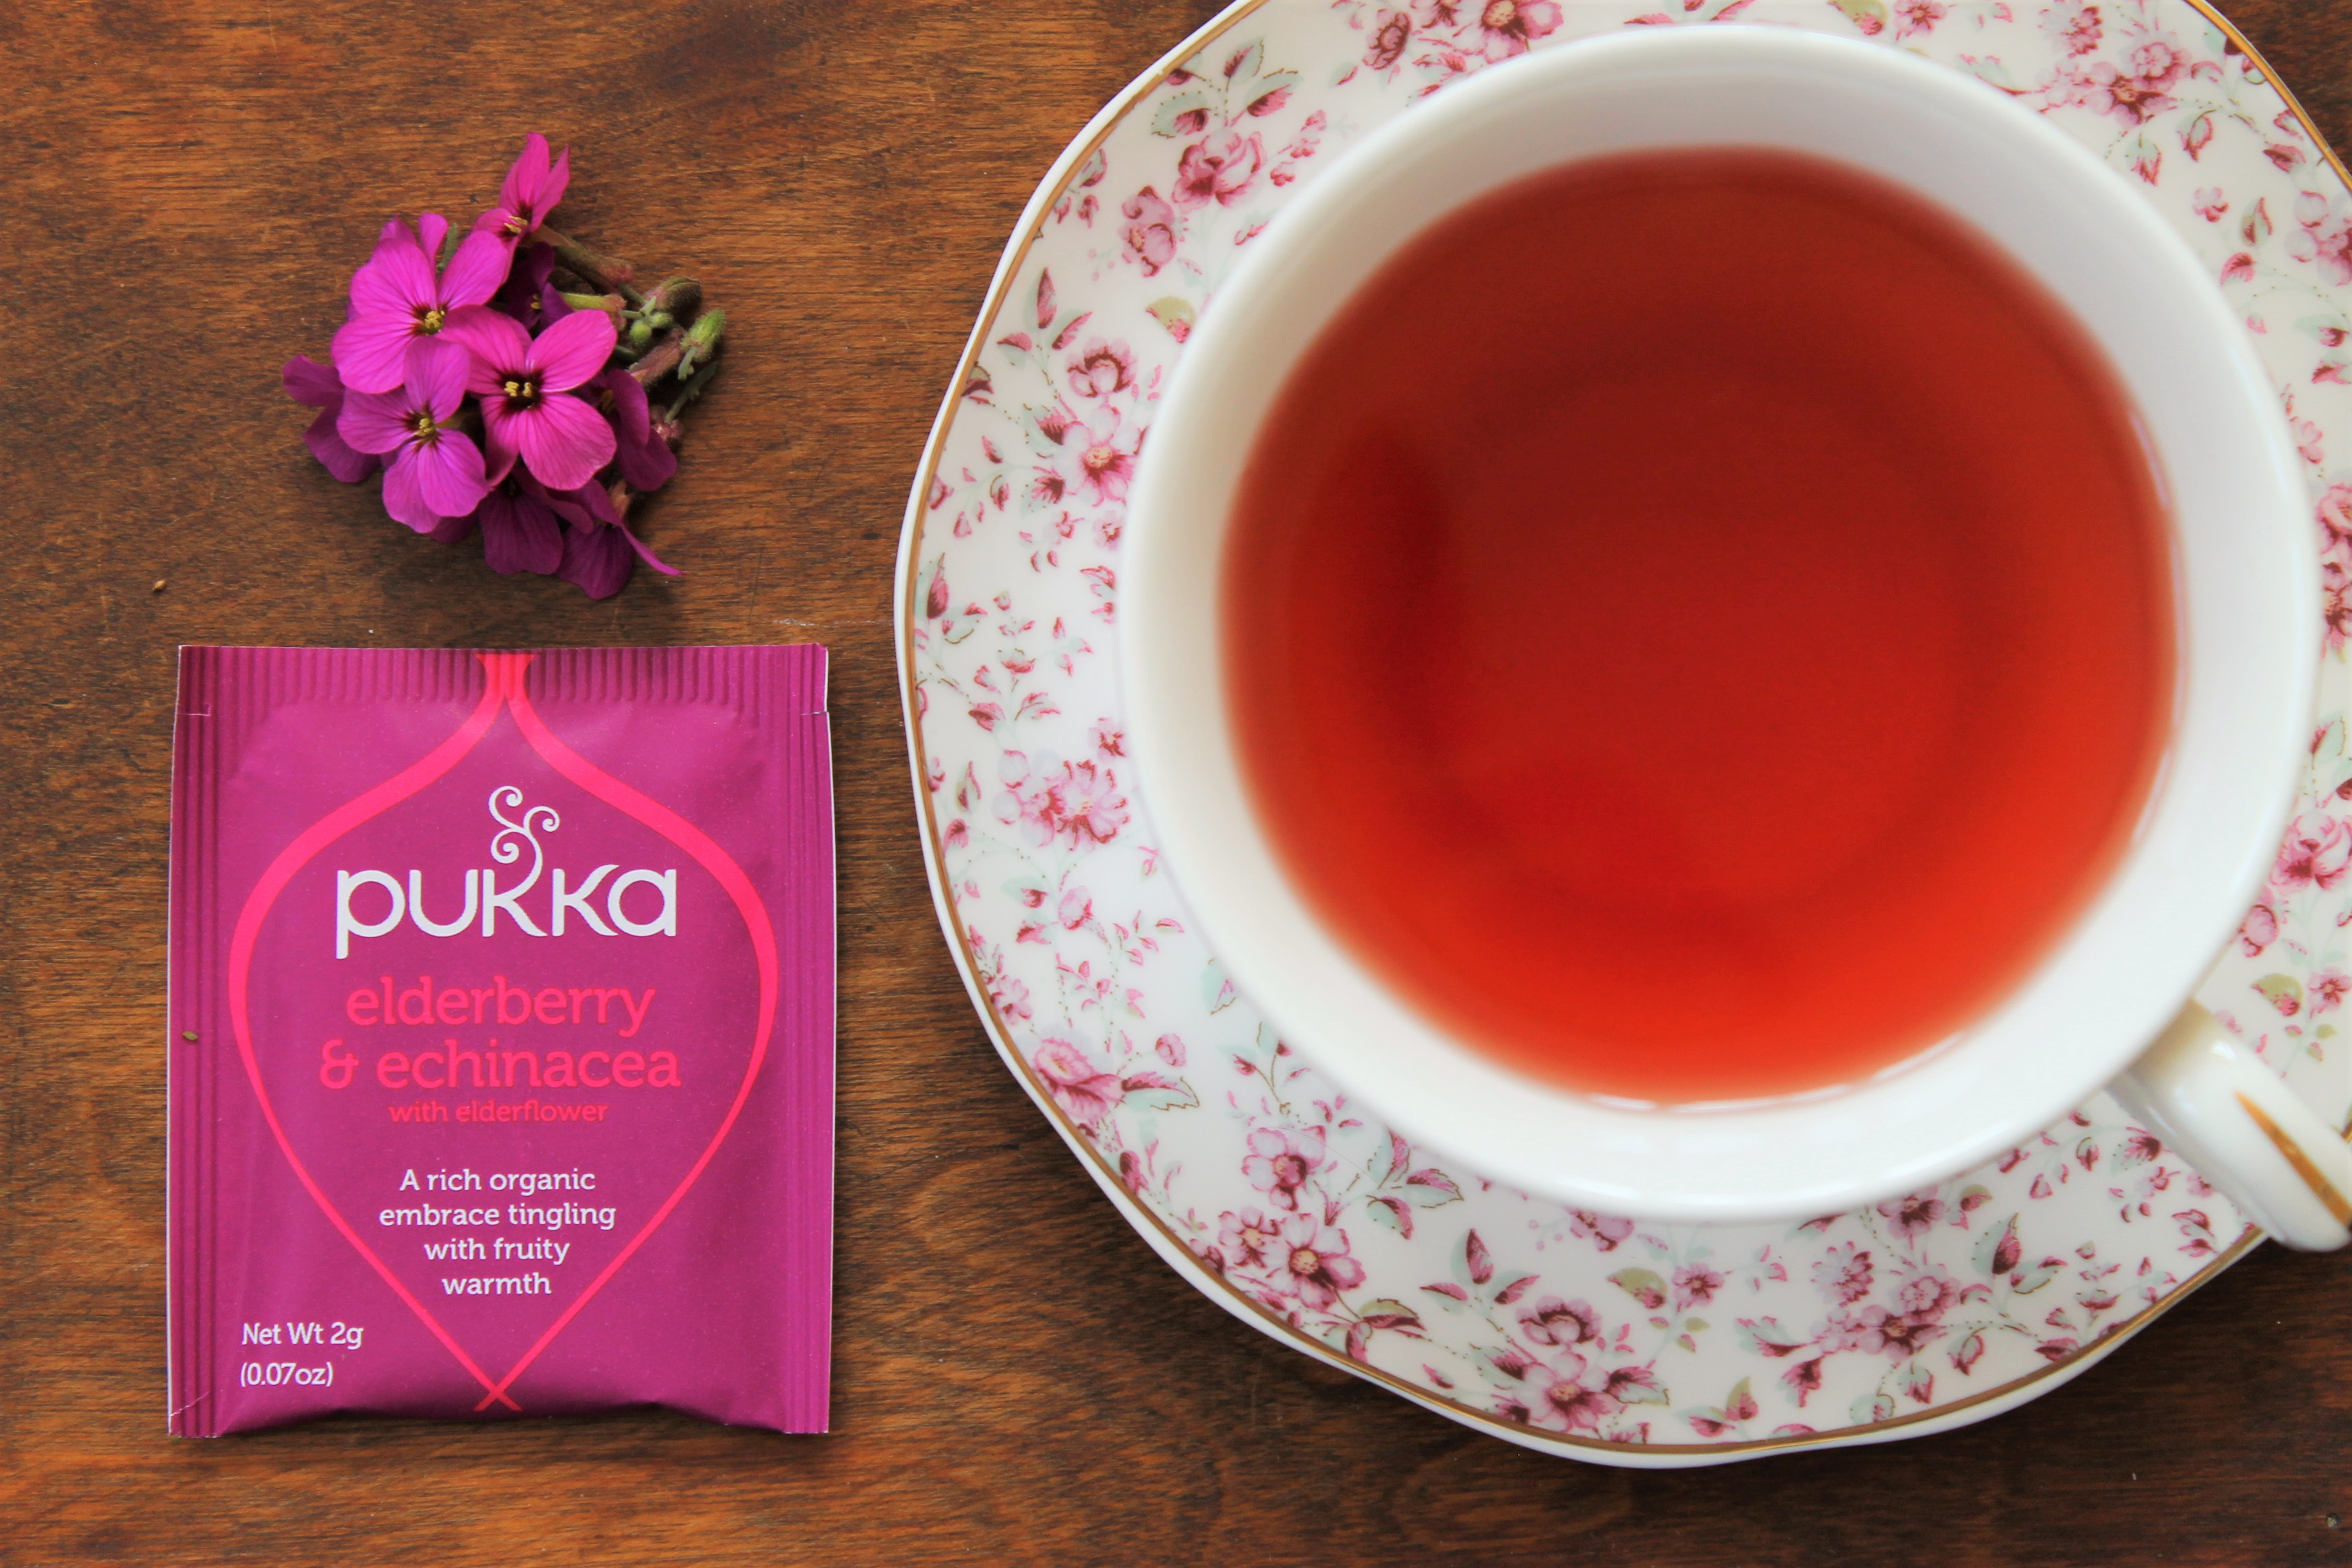 Pukka Elderberry & Echinacea Tea Review